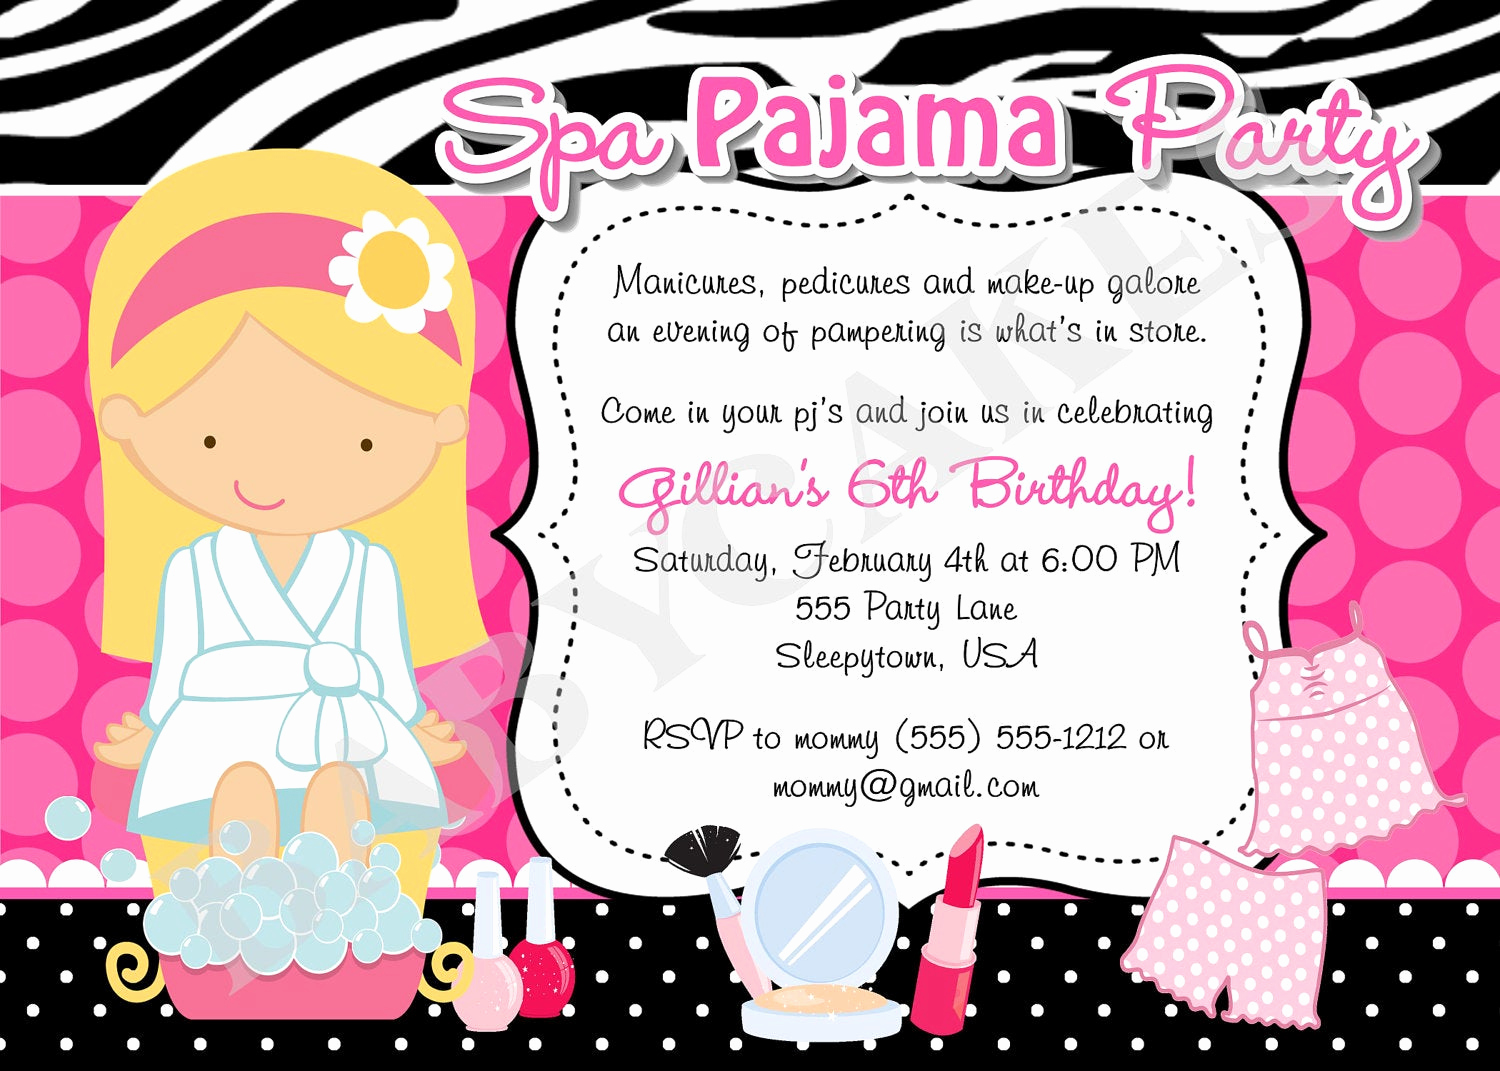 Spa Party Invitation Wording Awesome Spa Pajama Party Invitation Invite Spa Party Sleepover Spa Day